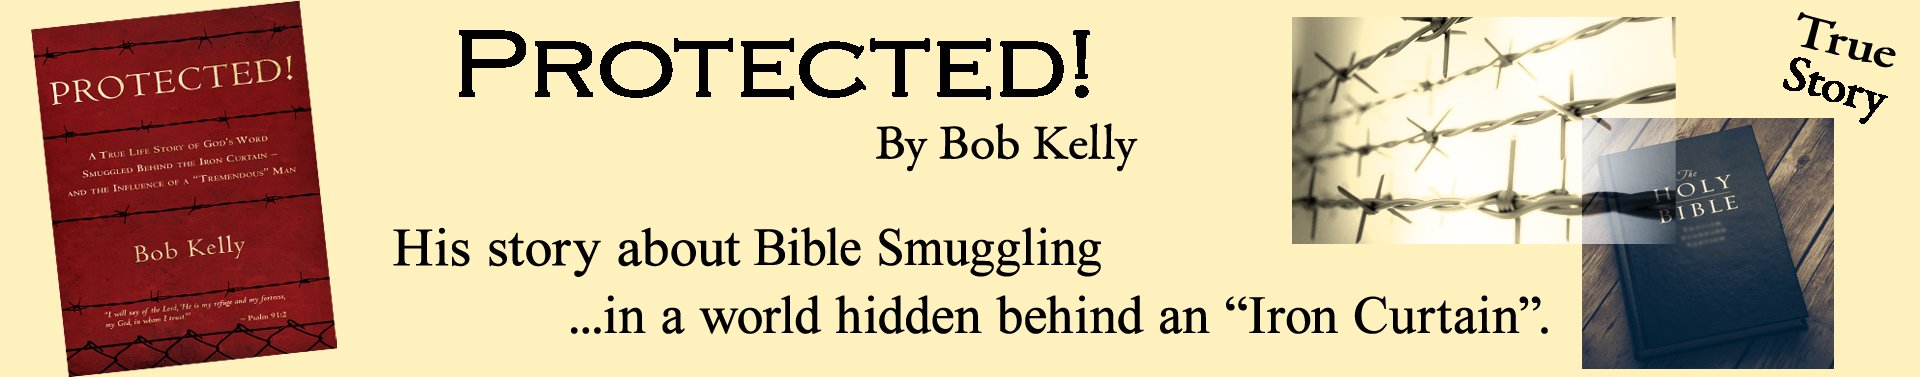 Protected! By Bob Kelly